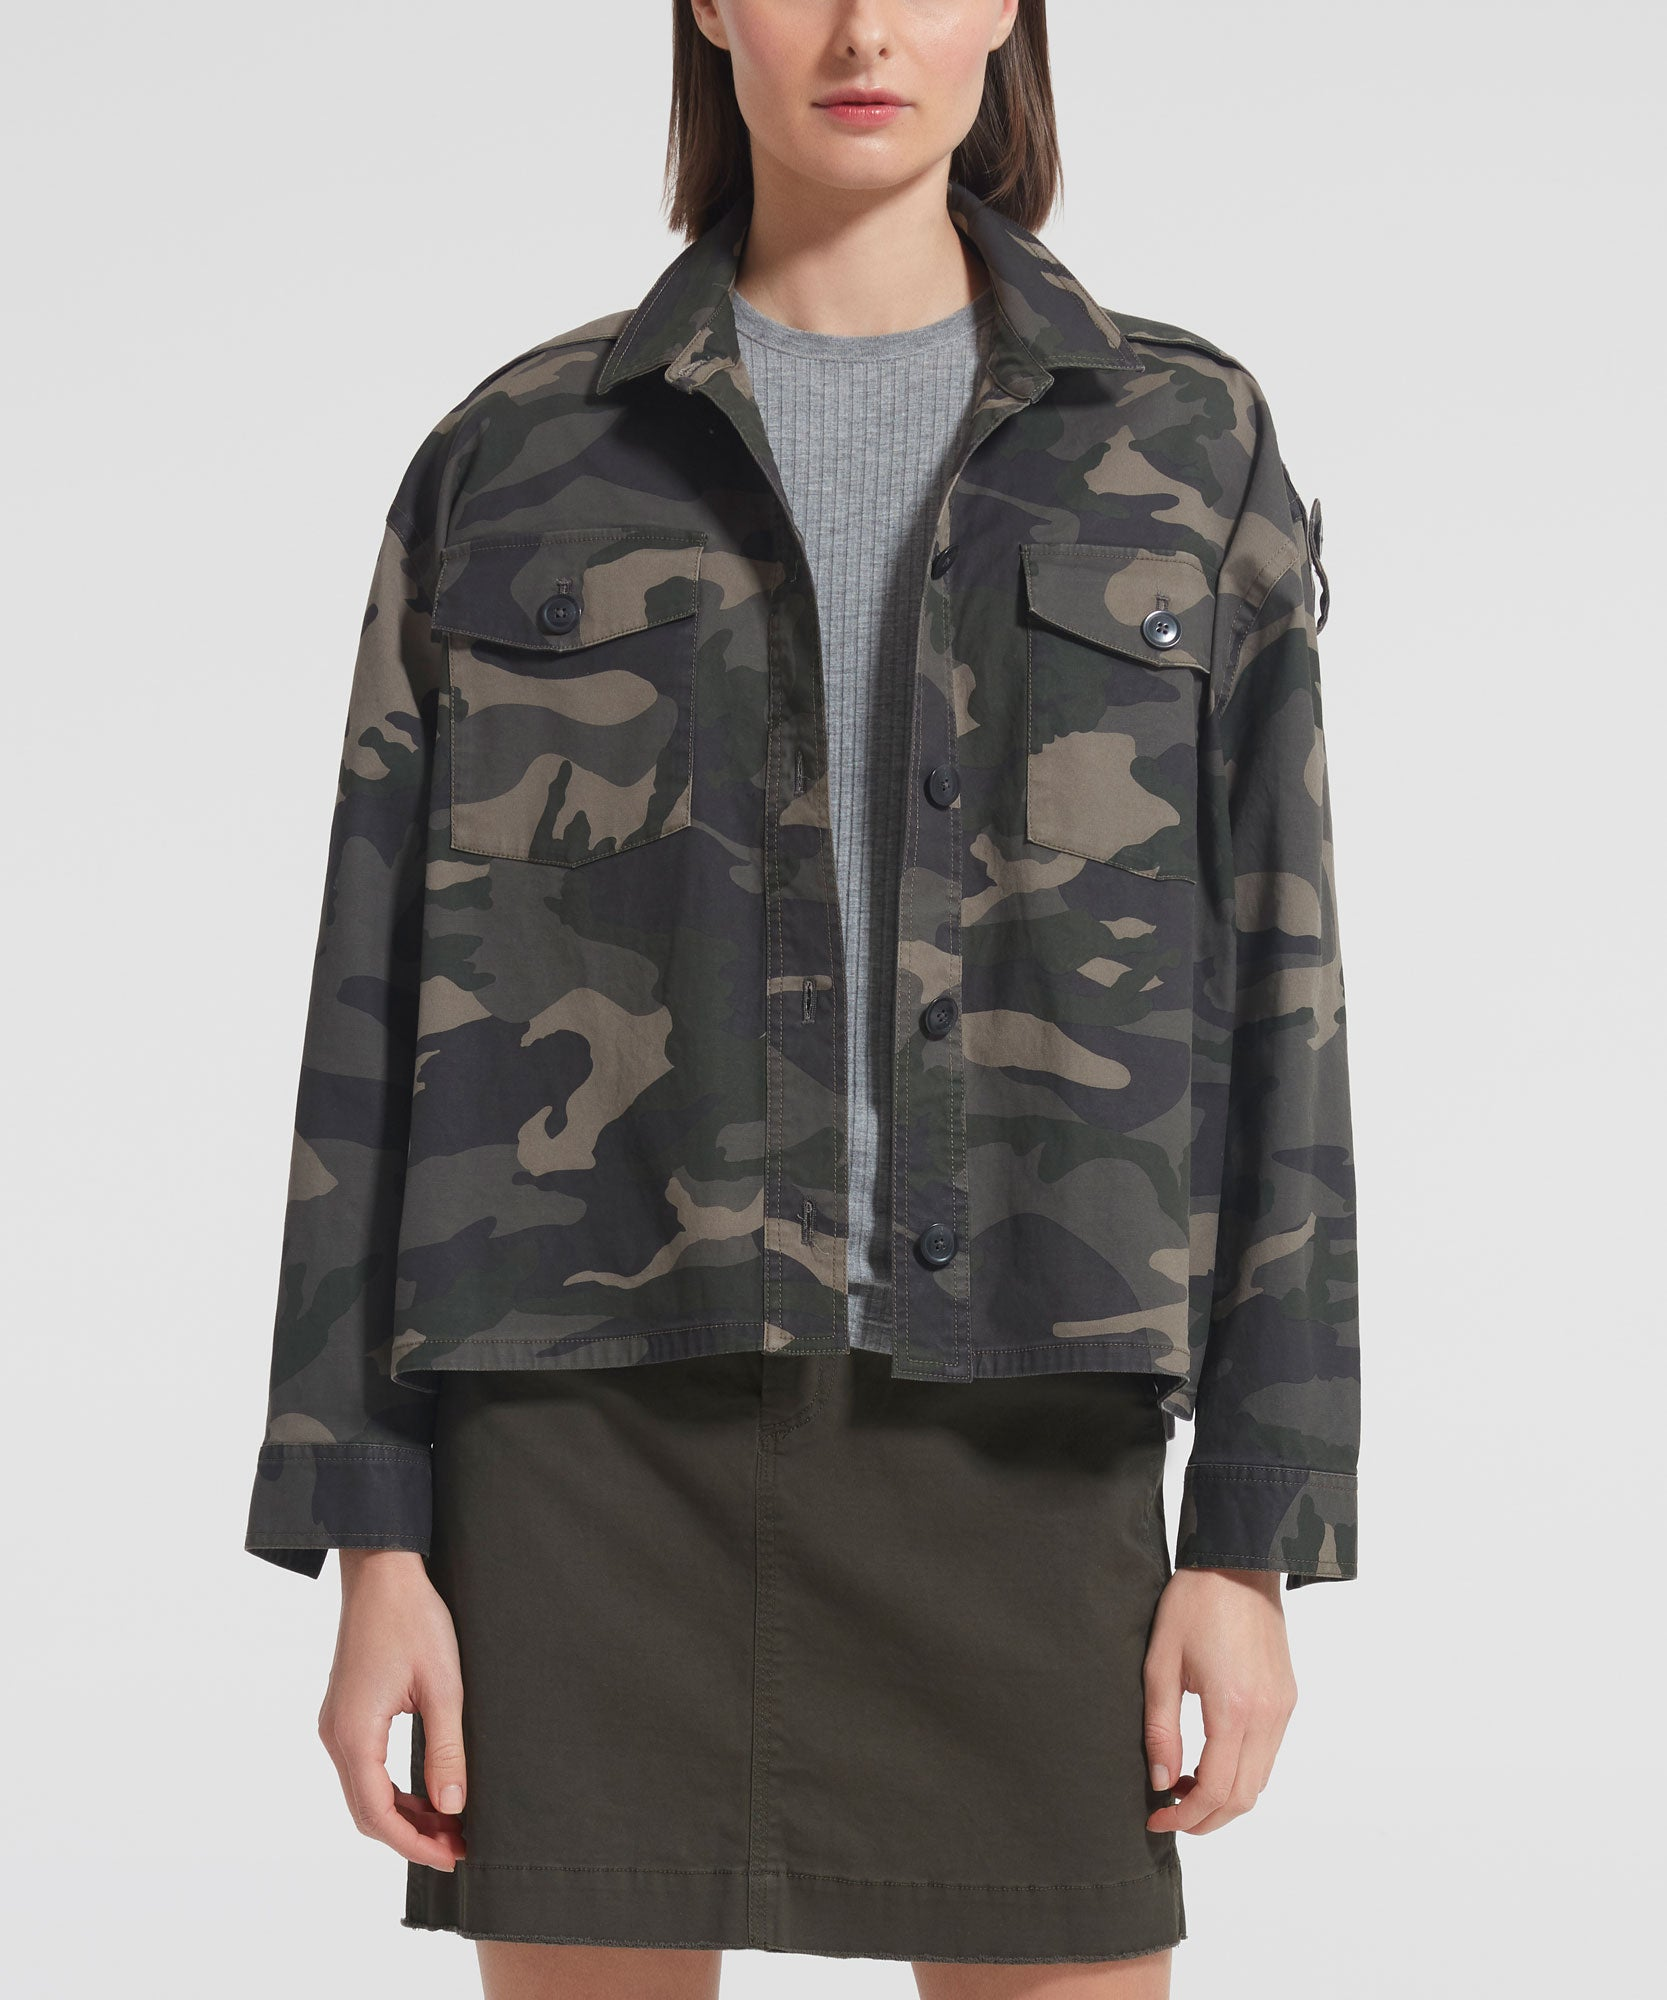 Jungle Camo Stretch Cotton Cropped Boxy Jacket - Women's Casual Jacket by ATM Anthony Thomas Melillo